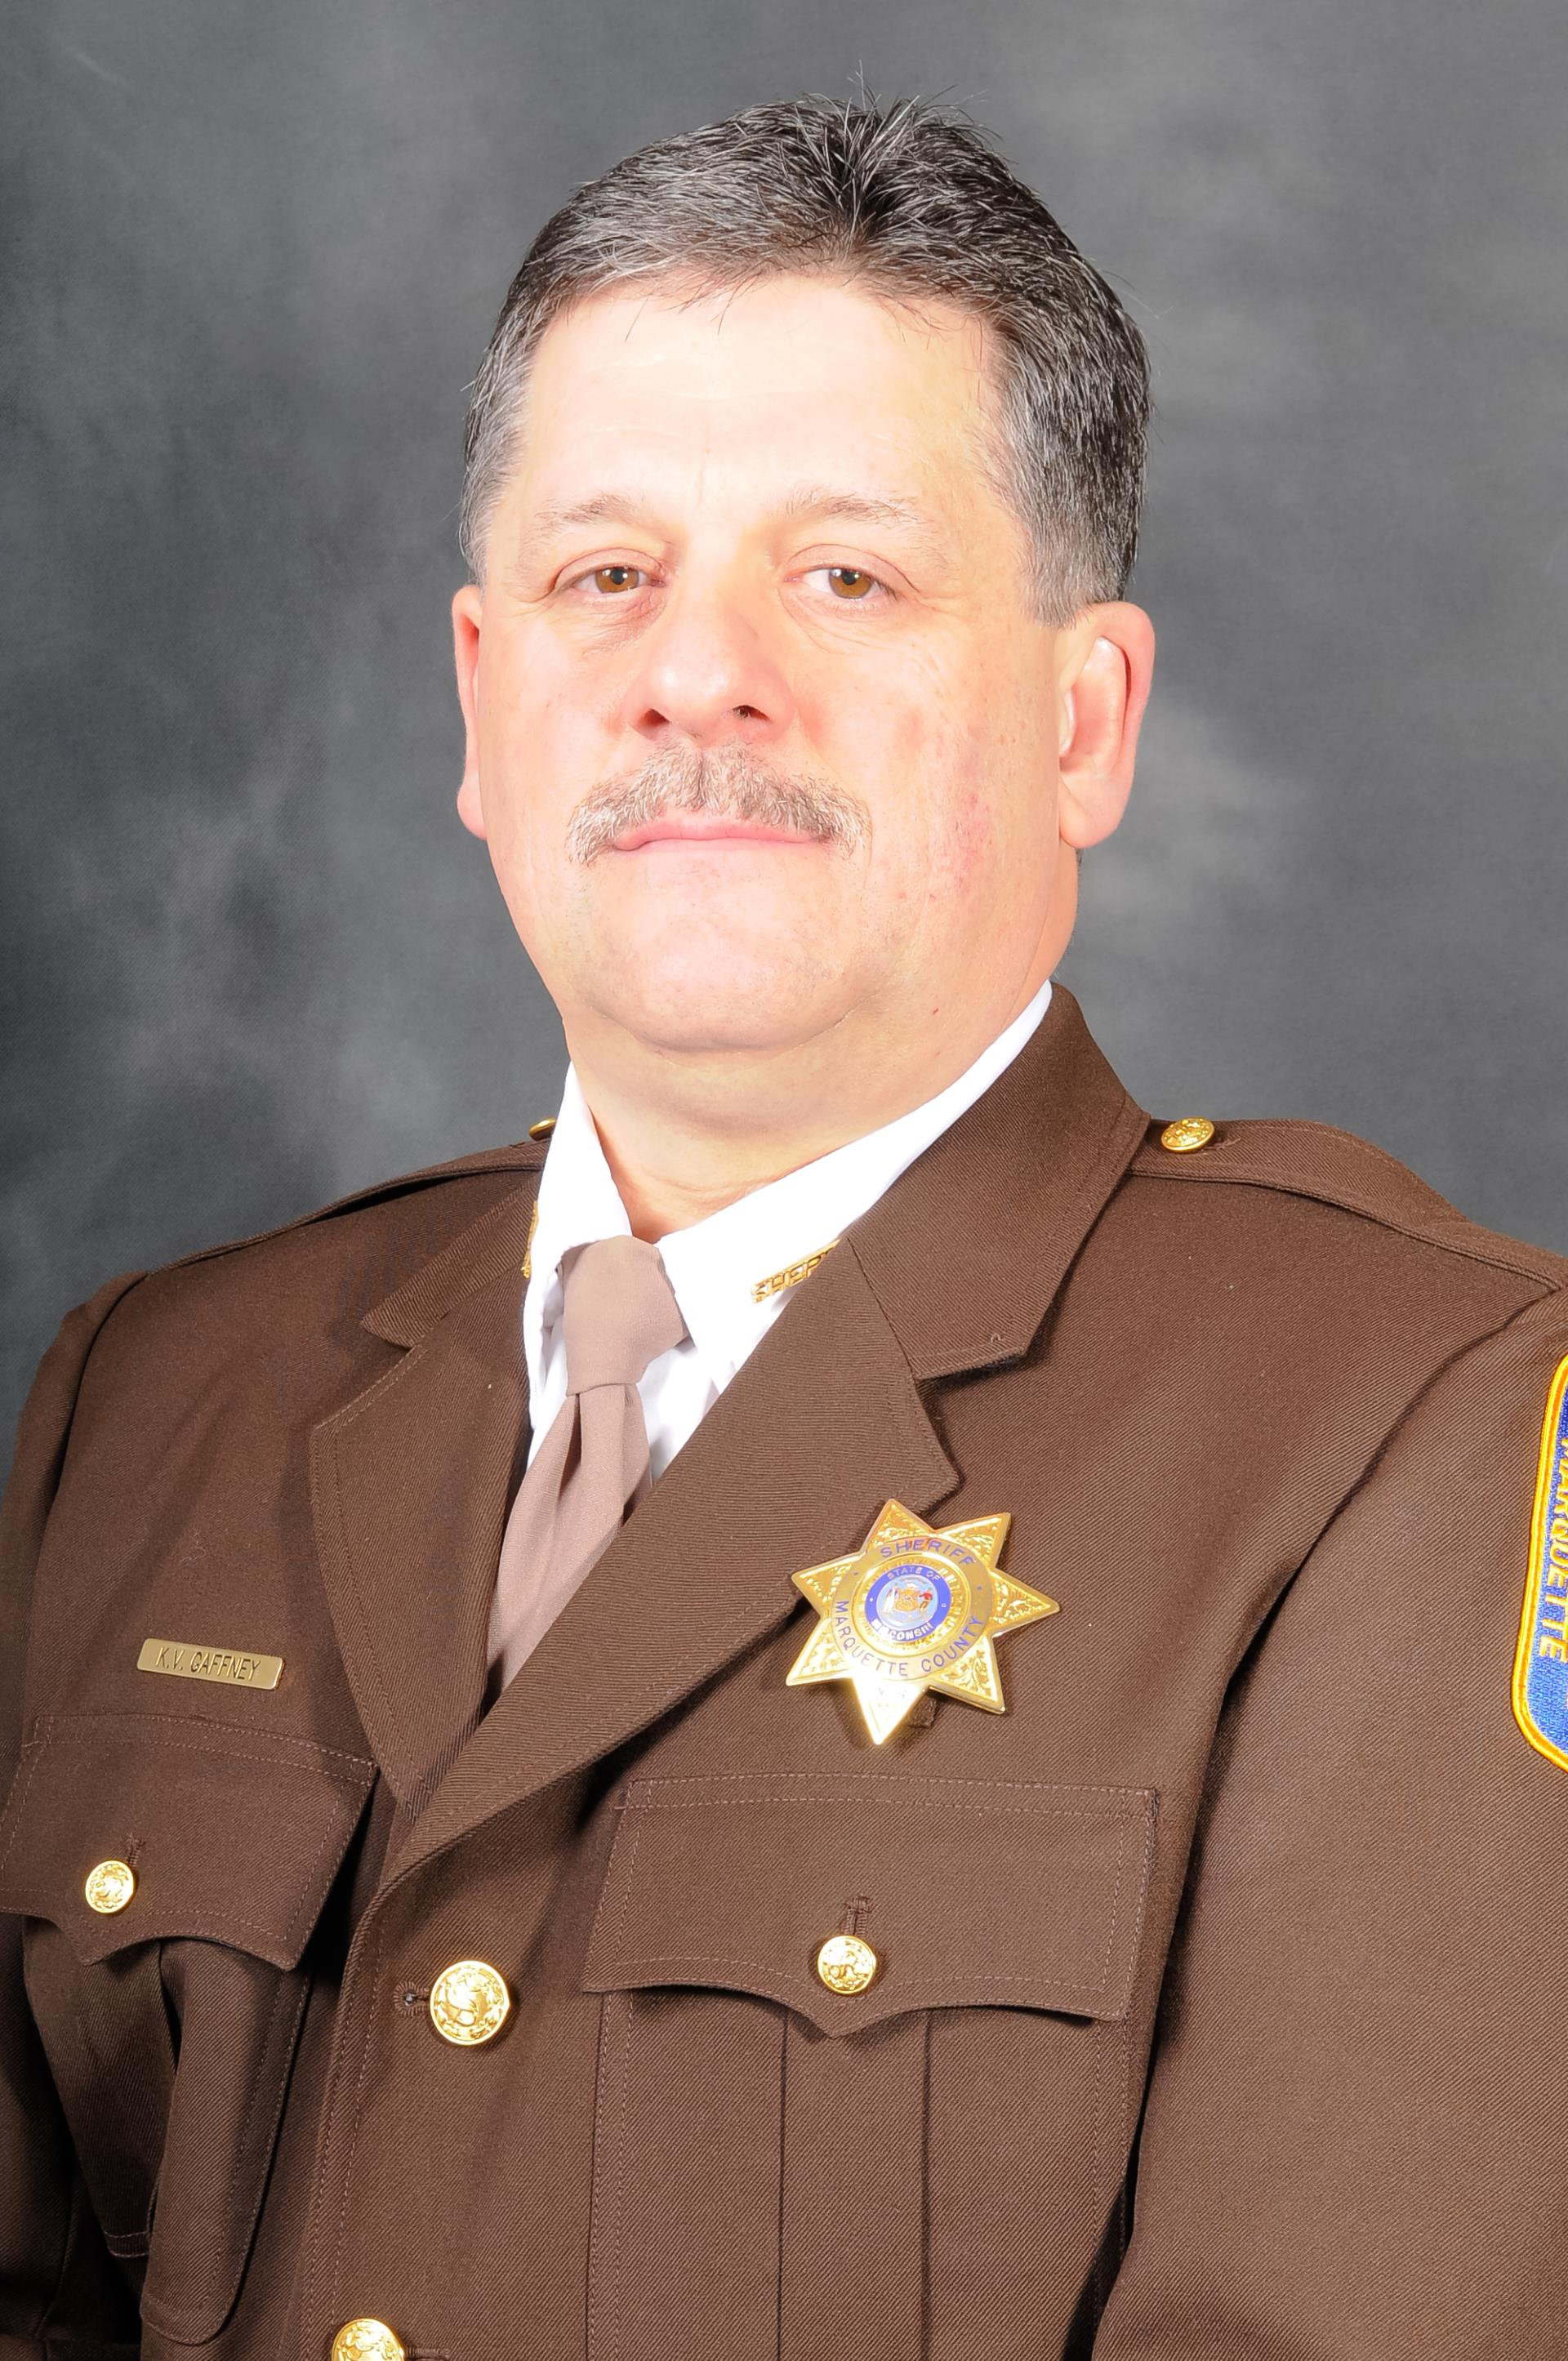 Sheriff Kim V. Gaffney